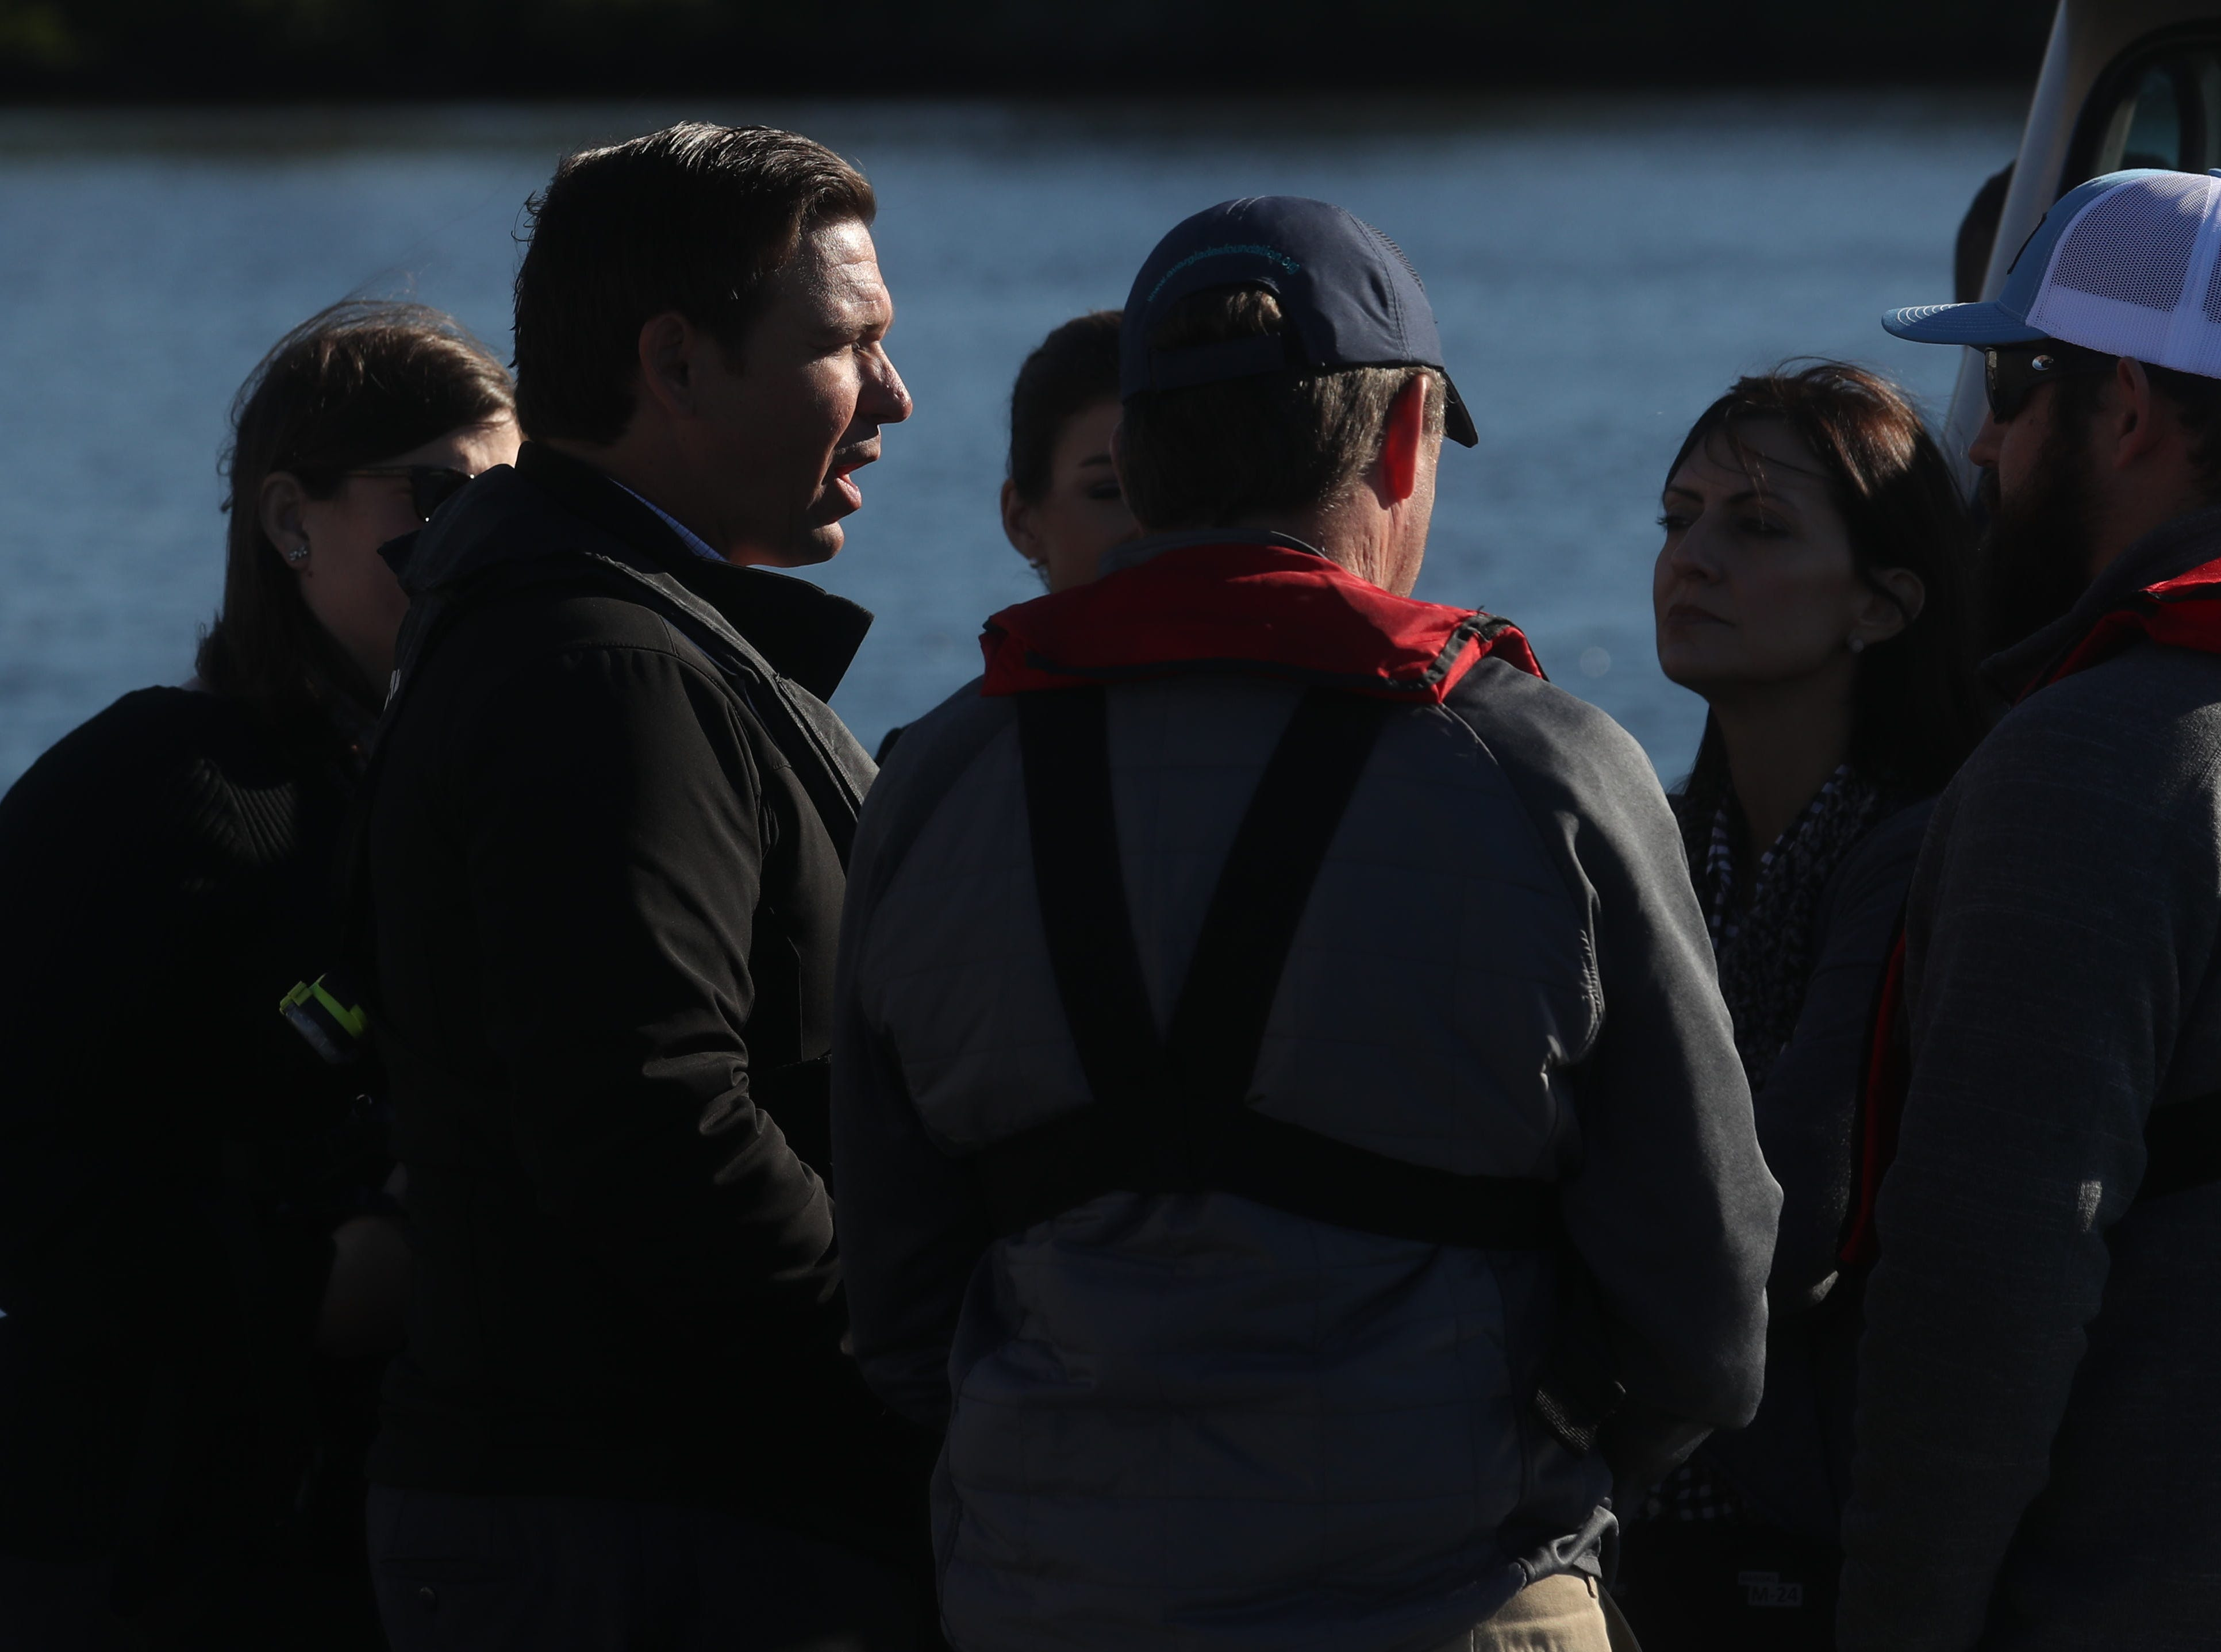 Gov. Ron DeSantis announced a $1 billion increase in water quality spending on Thursday 1/10/2018 at the Florida Gulf Coast University Vester Marine and Environmental Science Research Field Station in Bonita Springs, Fl.